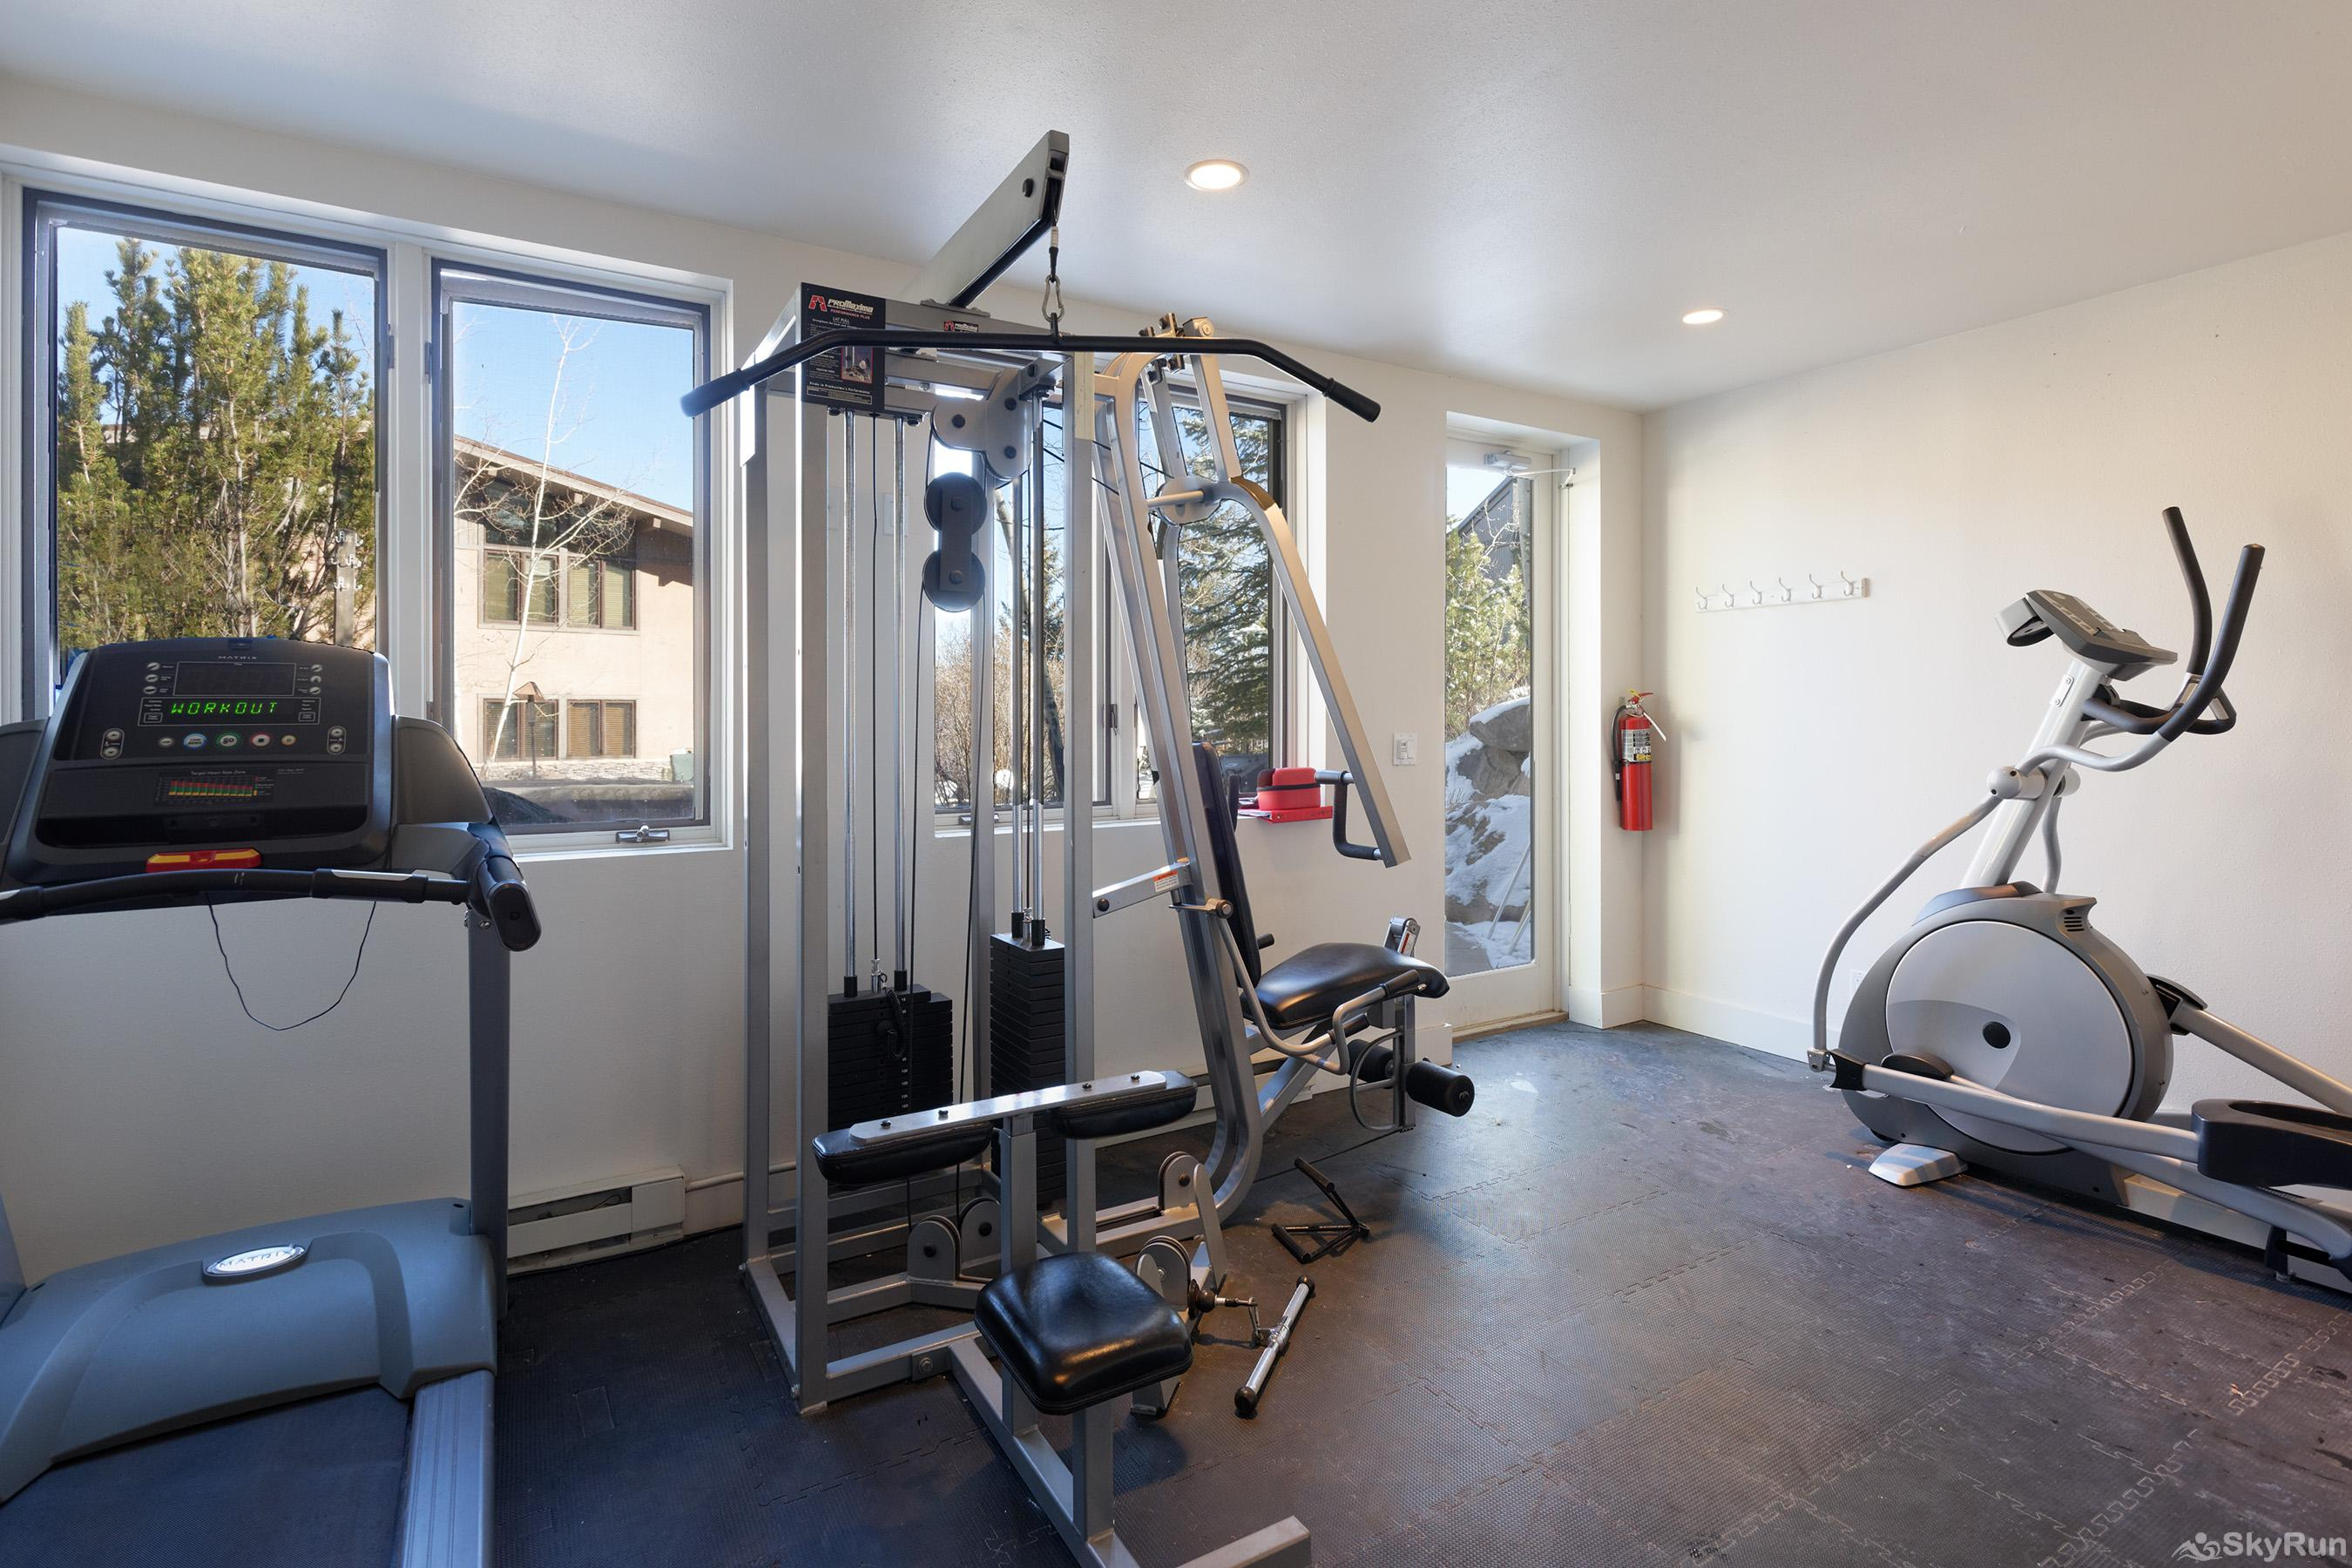 Aspenwood L6 Gym and Fitness Center